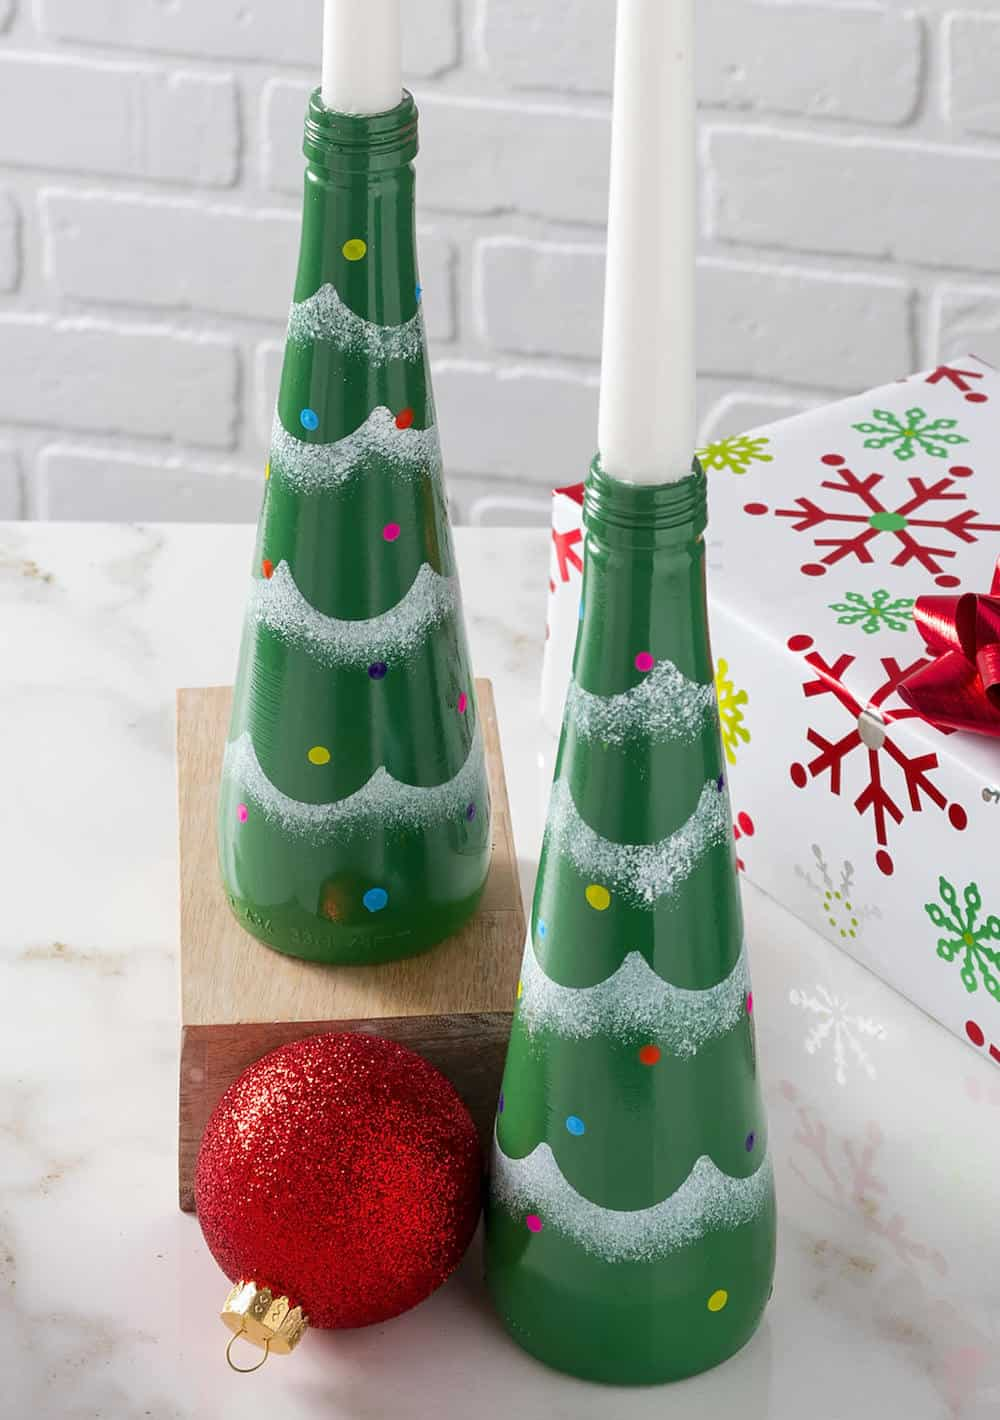 Recycle glass soda bottles into these fun and modern Christmas candle holders made to look like